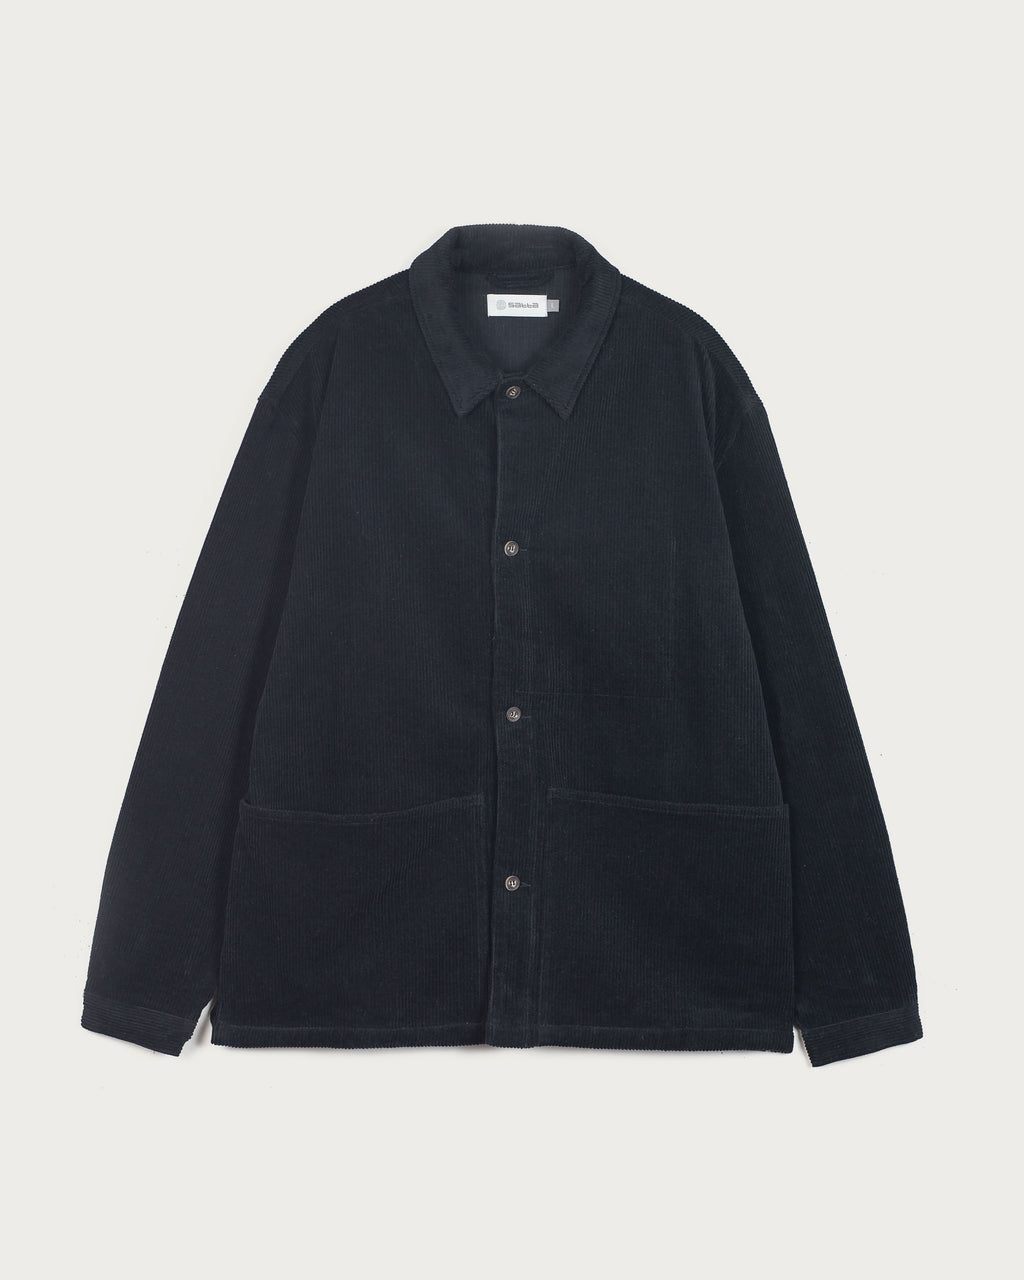 Allotment Jacket - Black